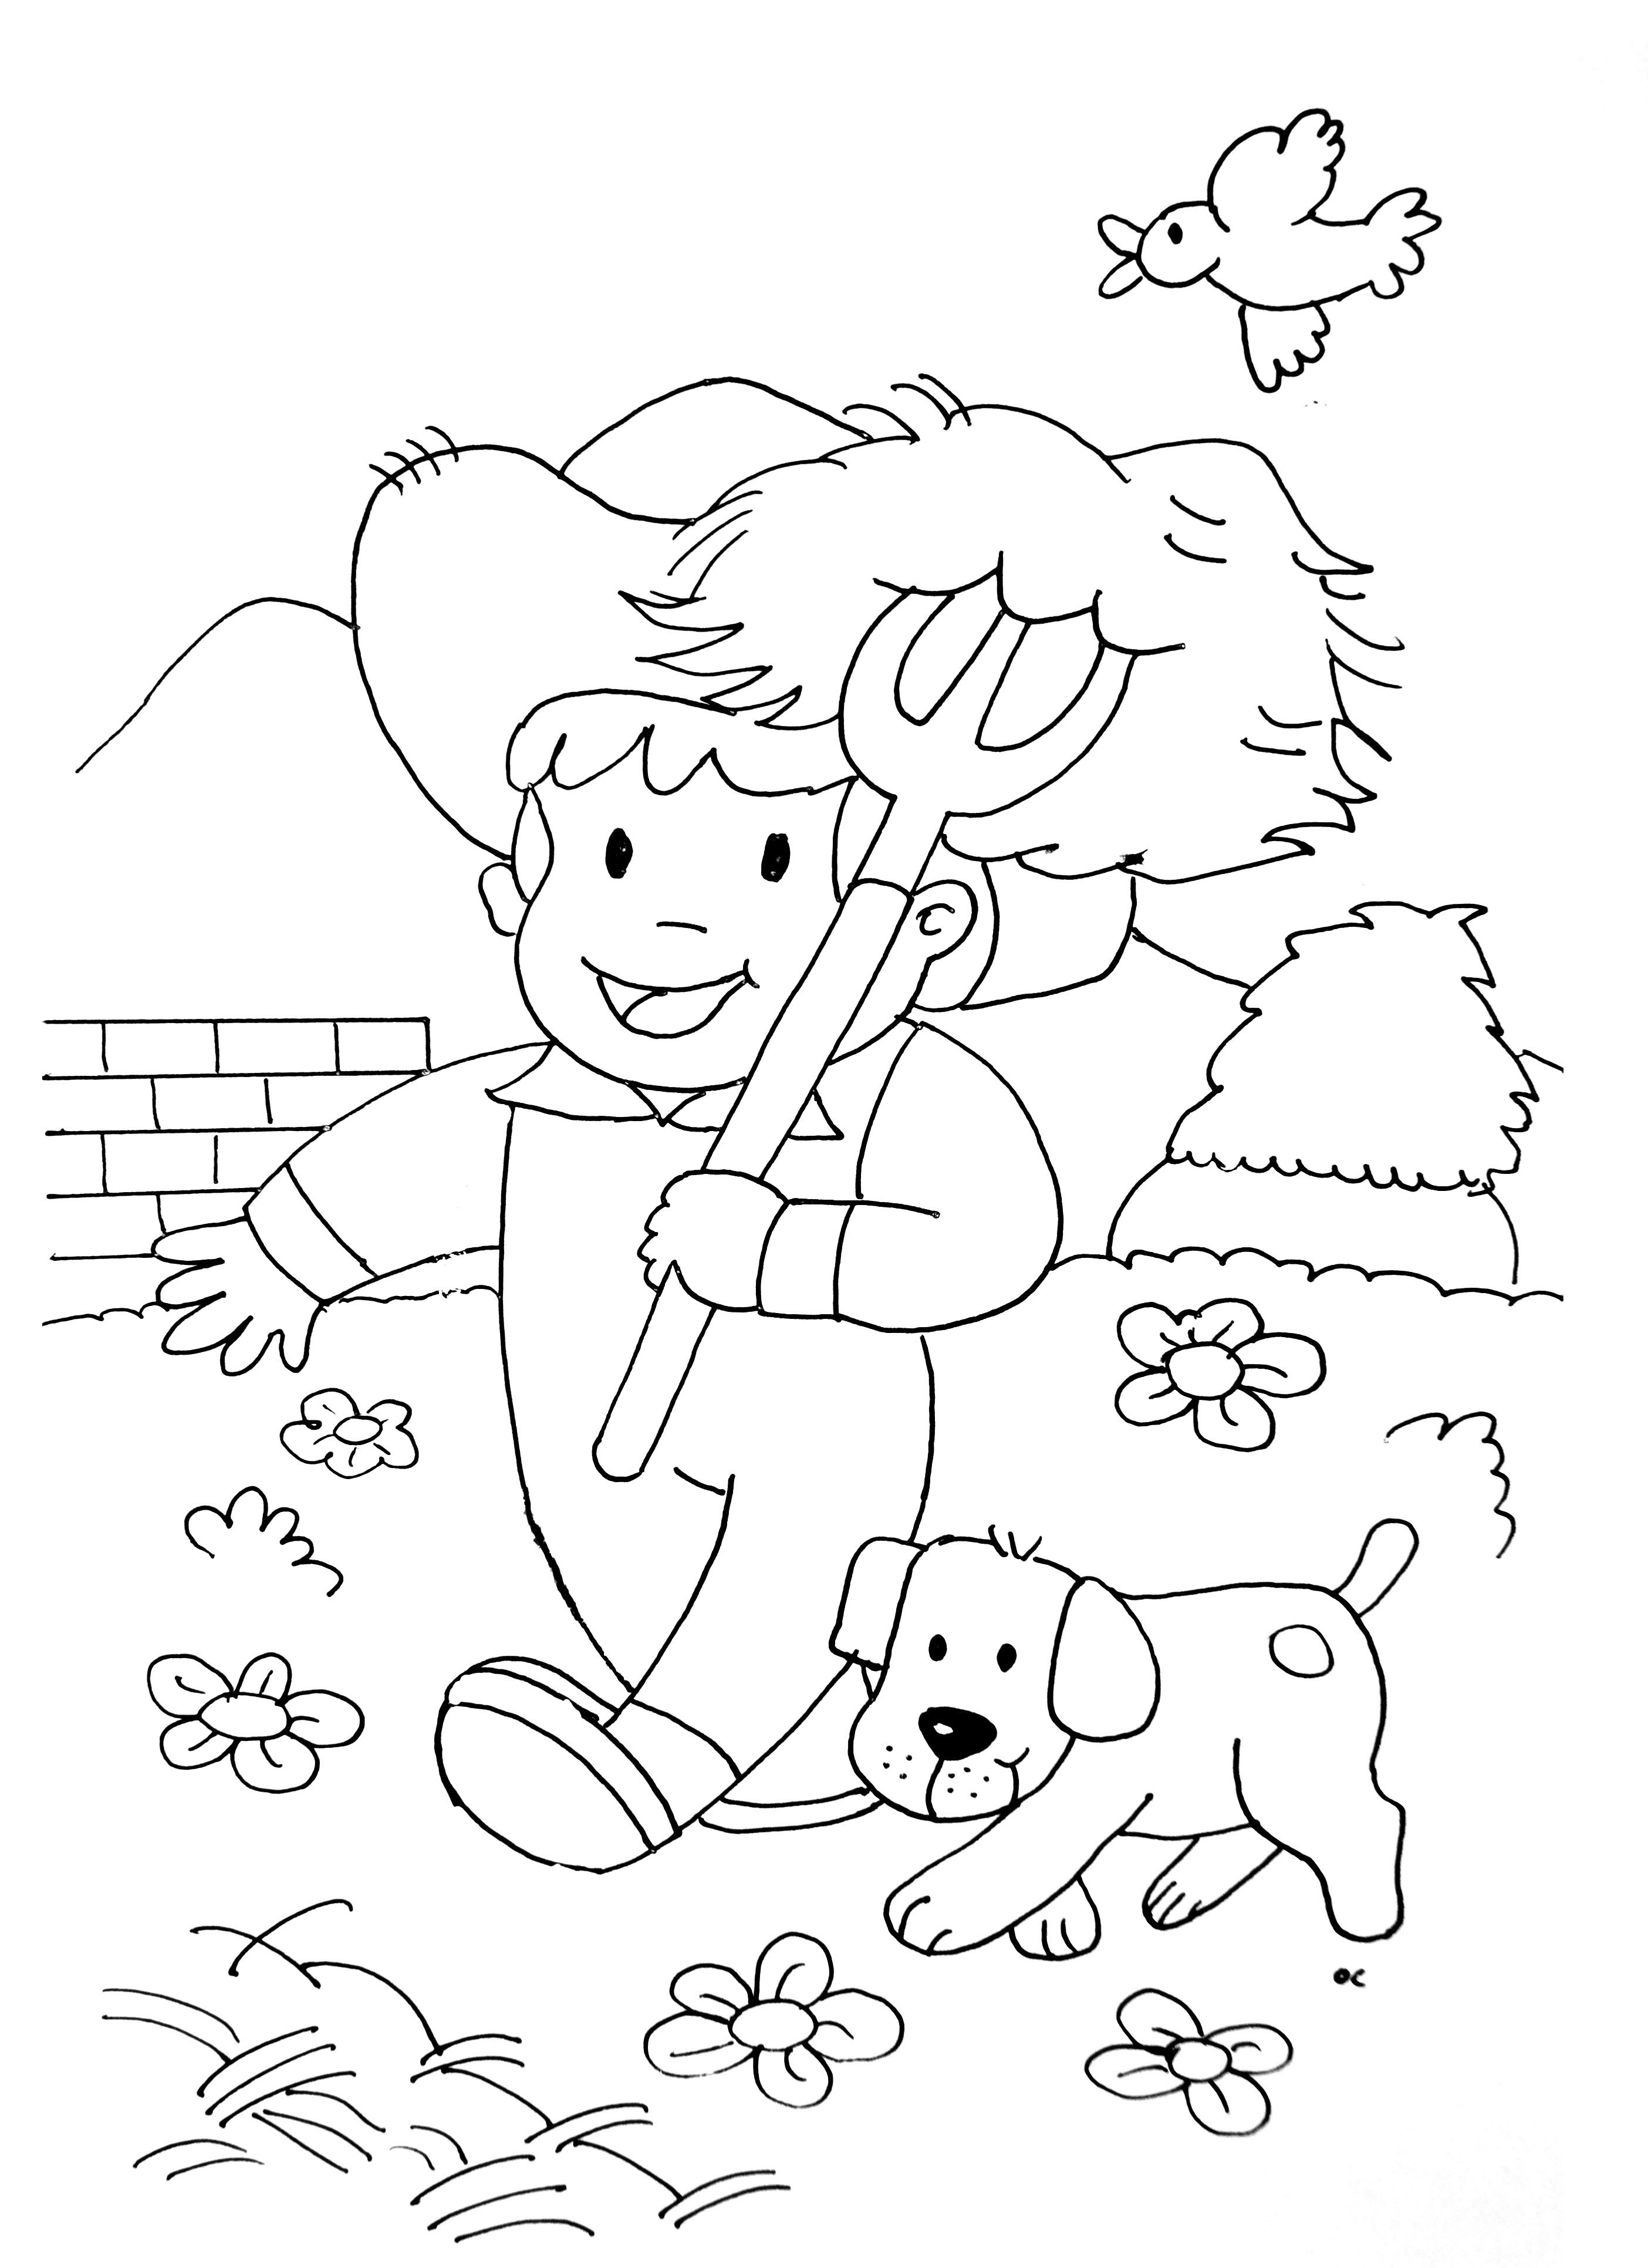 farmers coloring horse to color for children little farmer horses kids farmers coloring